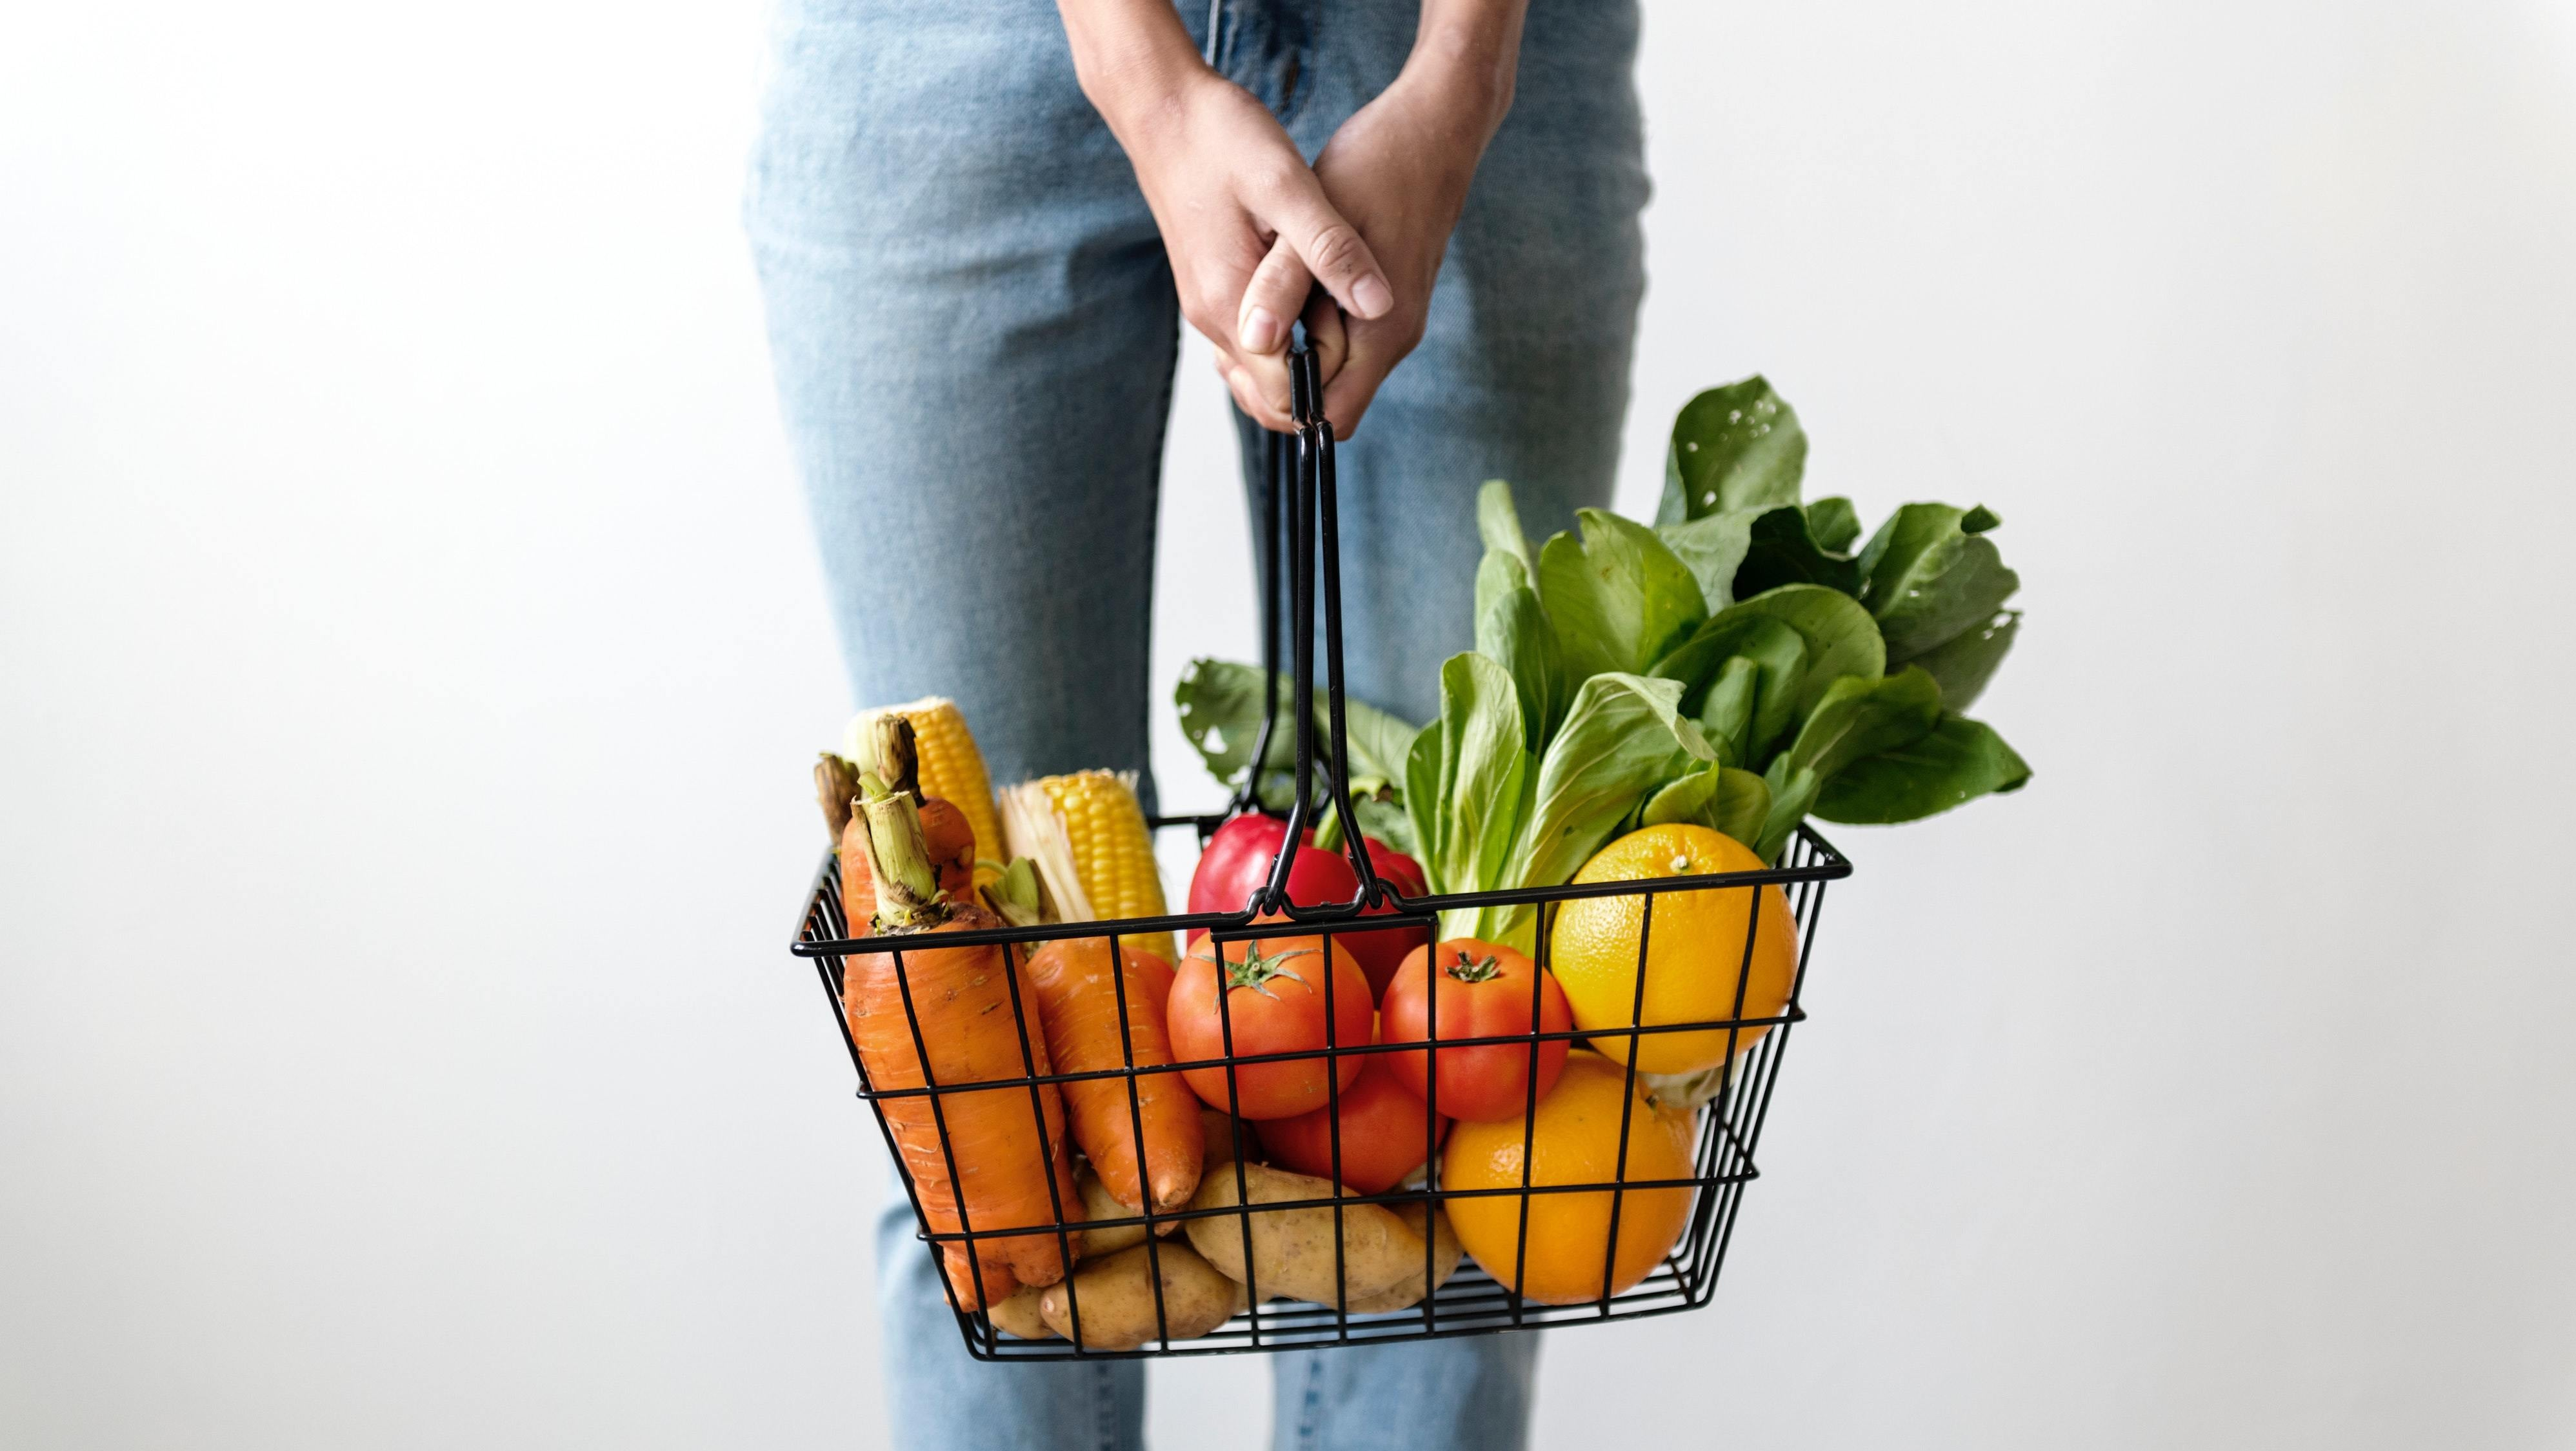 How To Zero-Waste Grocery Shop